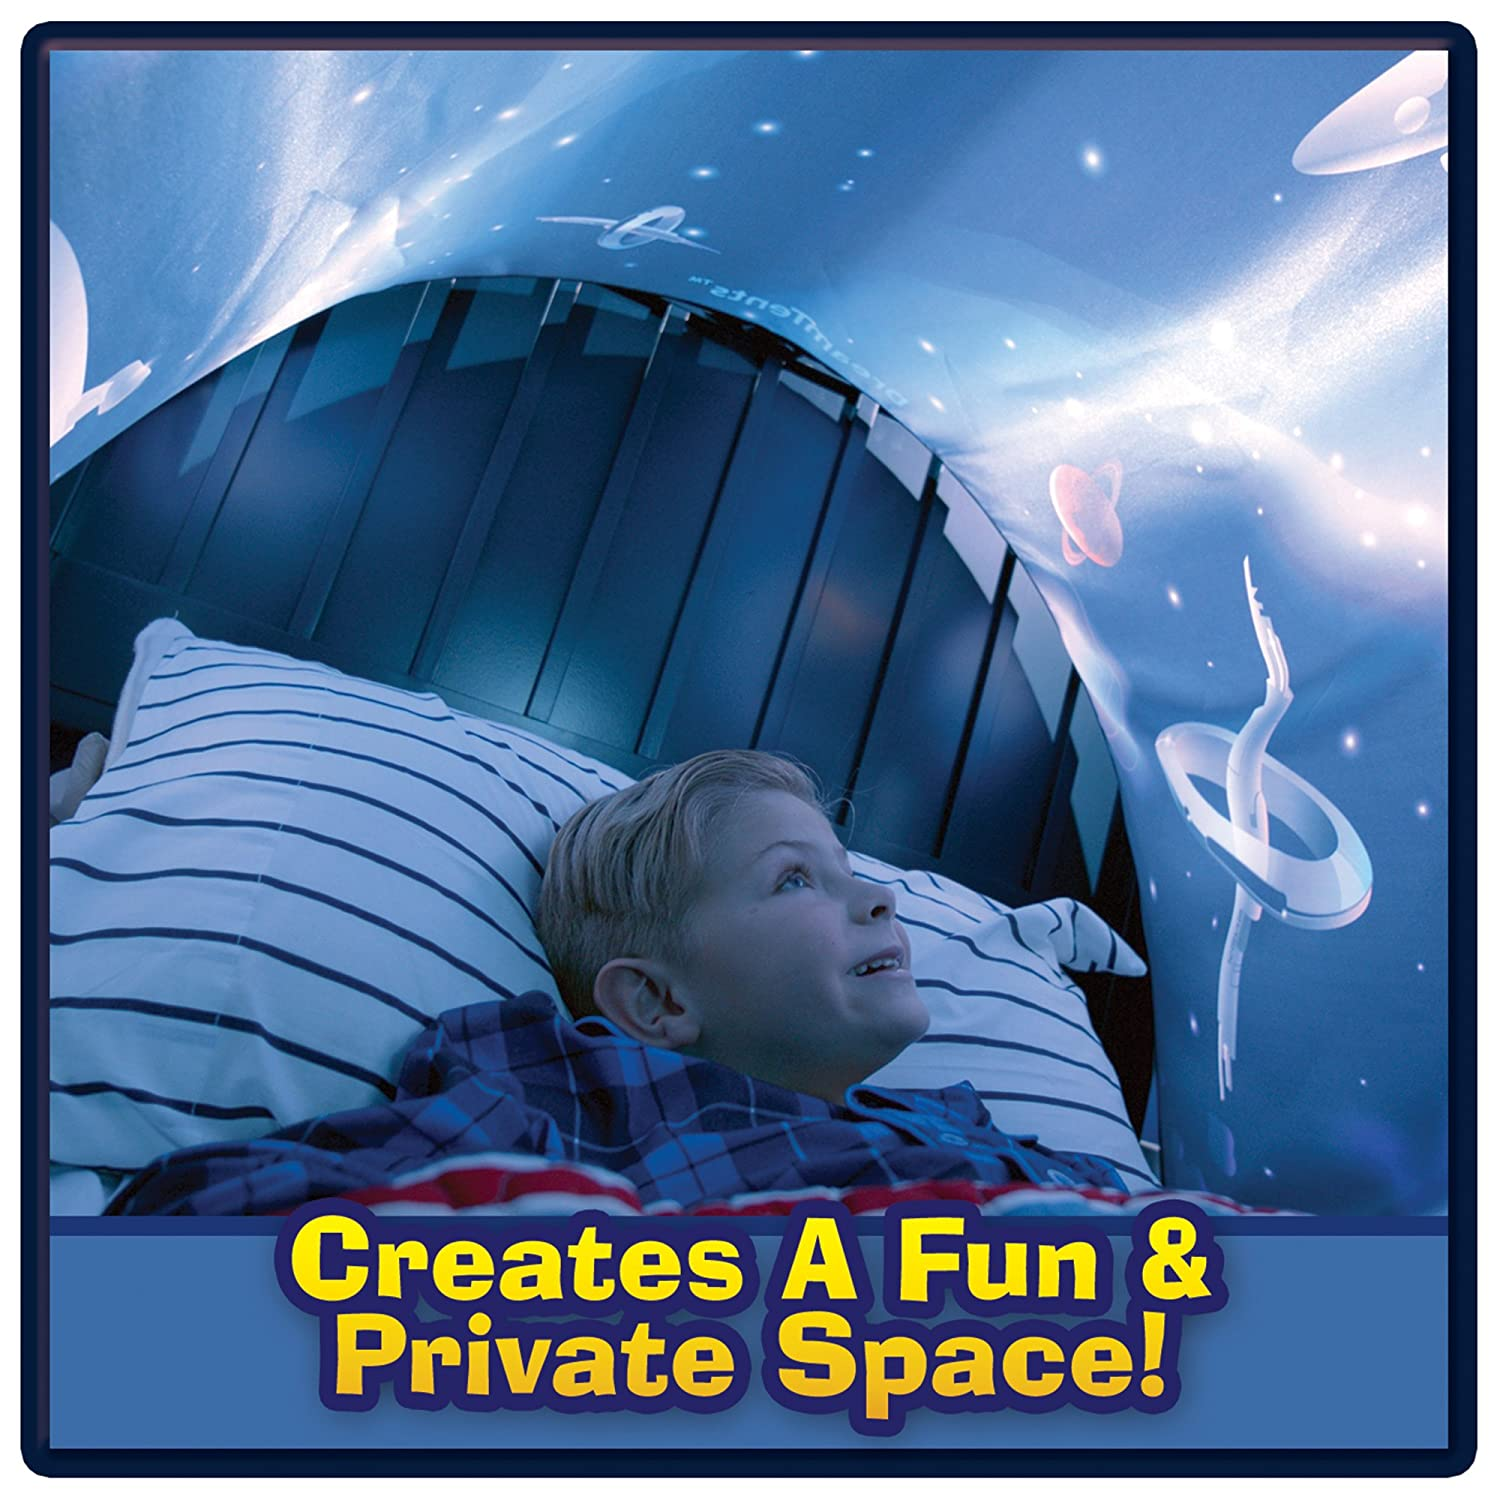 ONTEL Dream Tents Magical Dream World! Space Adventure Ontel Products